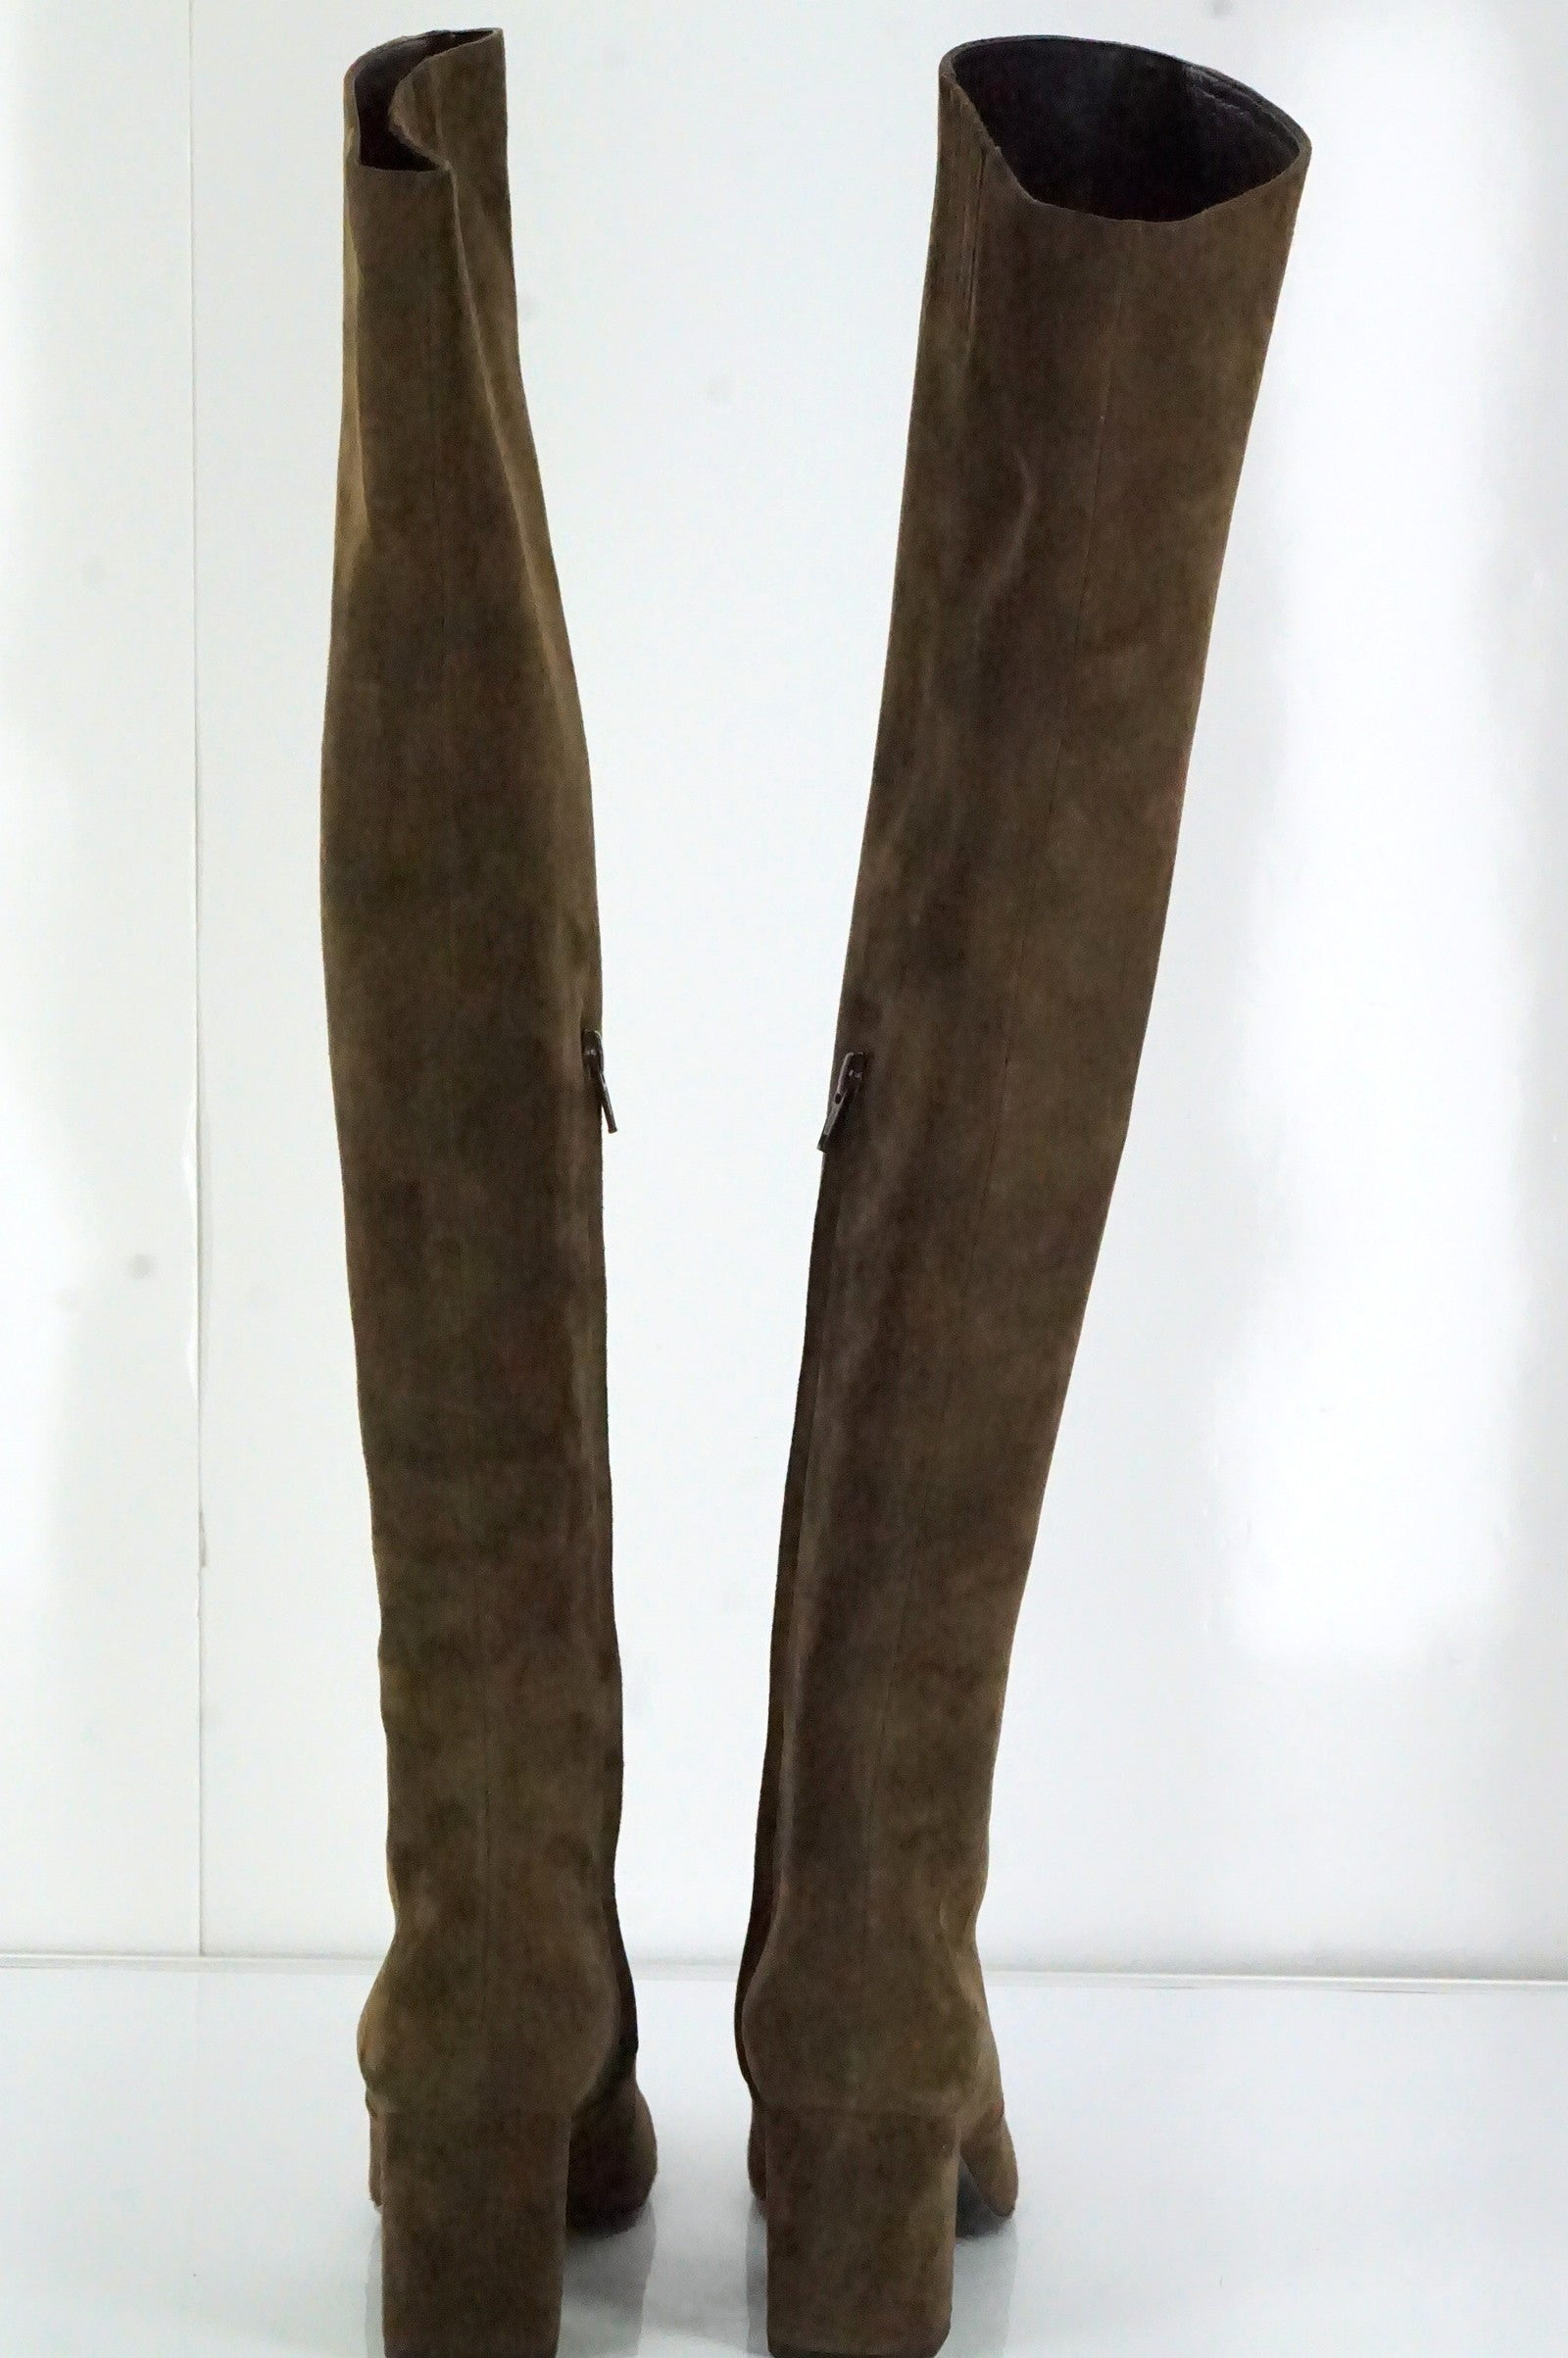 Saint Laurent Brown Suede 'Babies' Over the Knee Boots Size 37 NIB OTK $1495